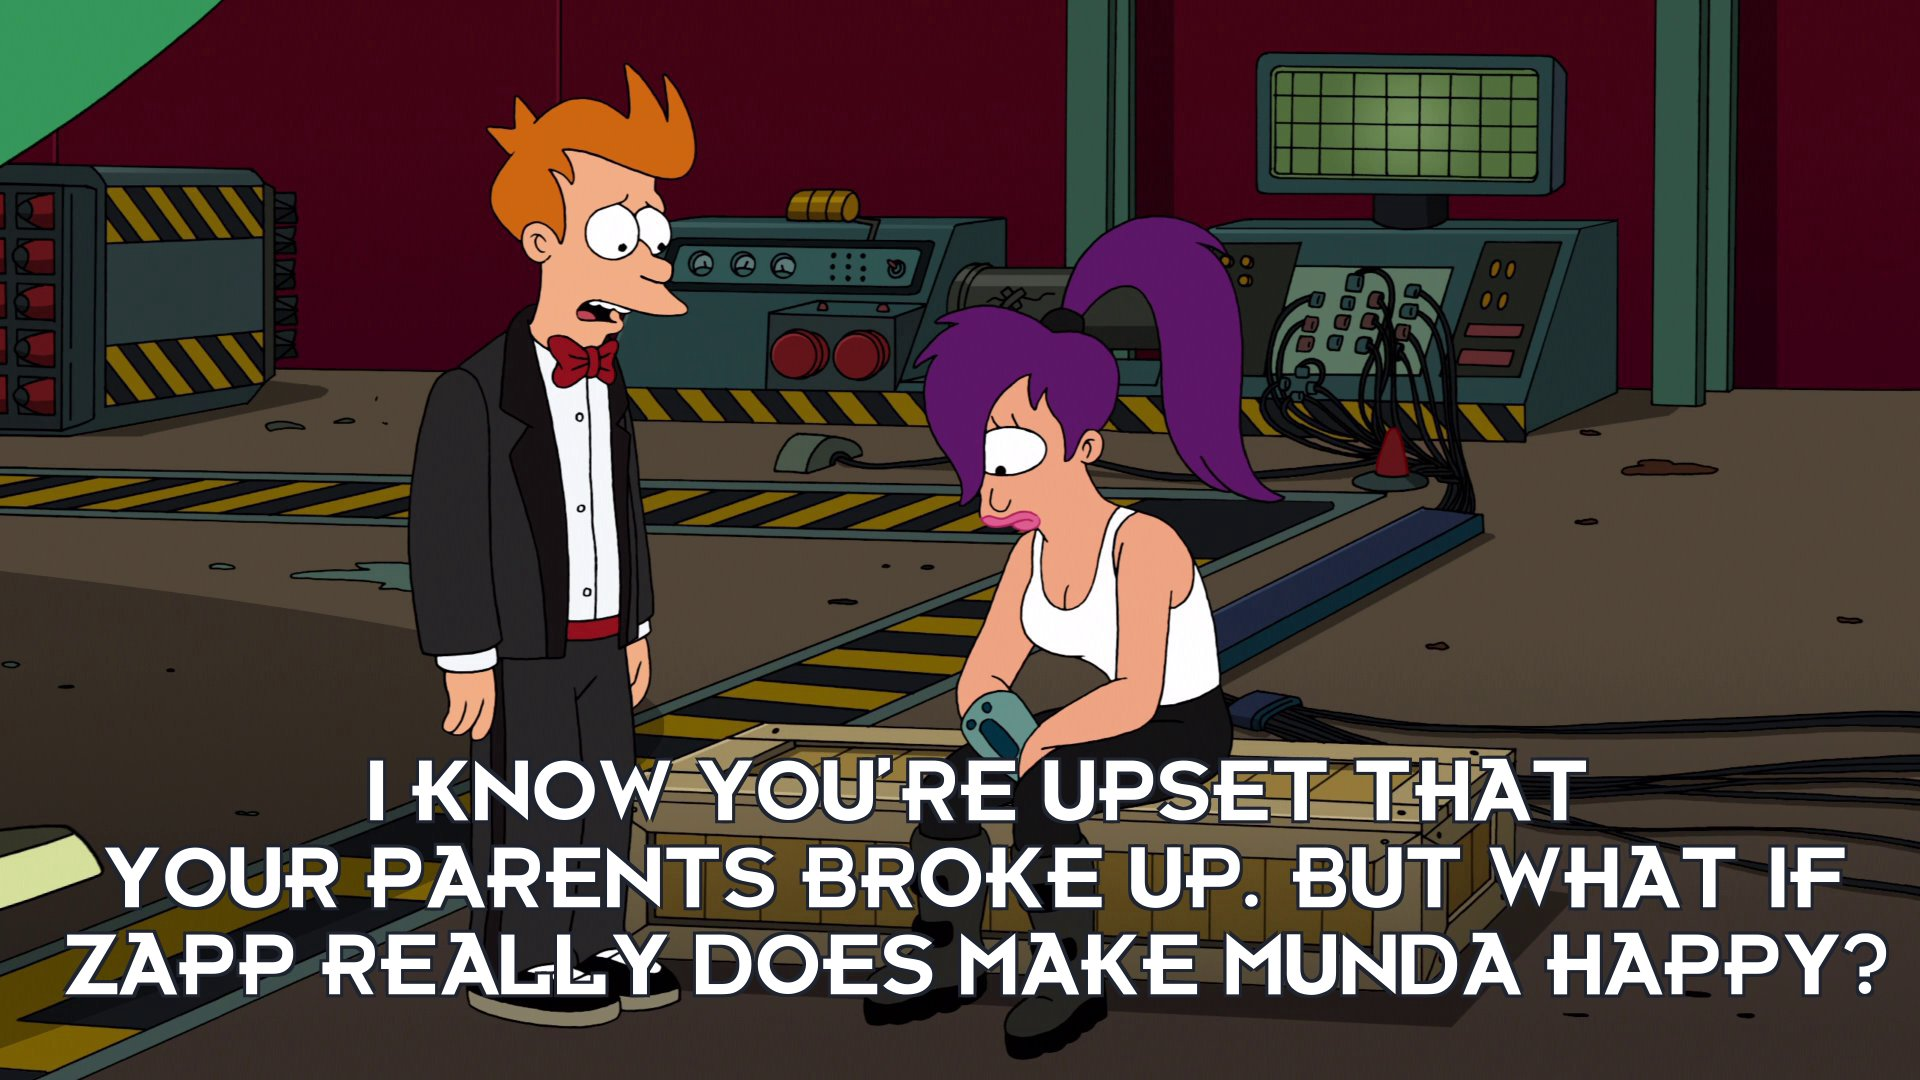 Philip J Fry: I know you're upset that your parents broke up. But what if Zapp really does make Munda happy?